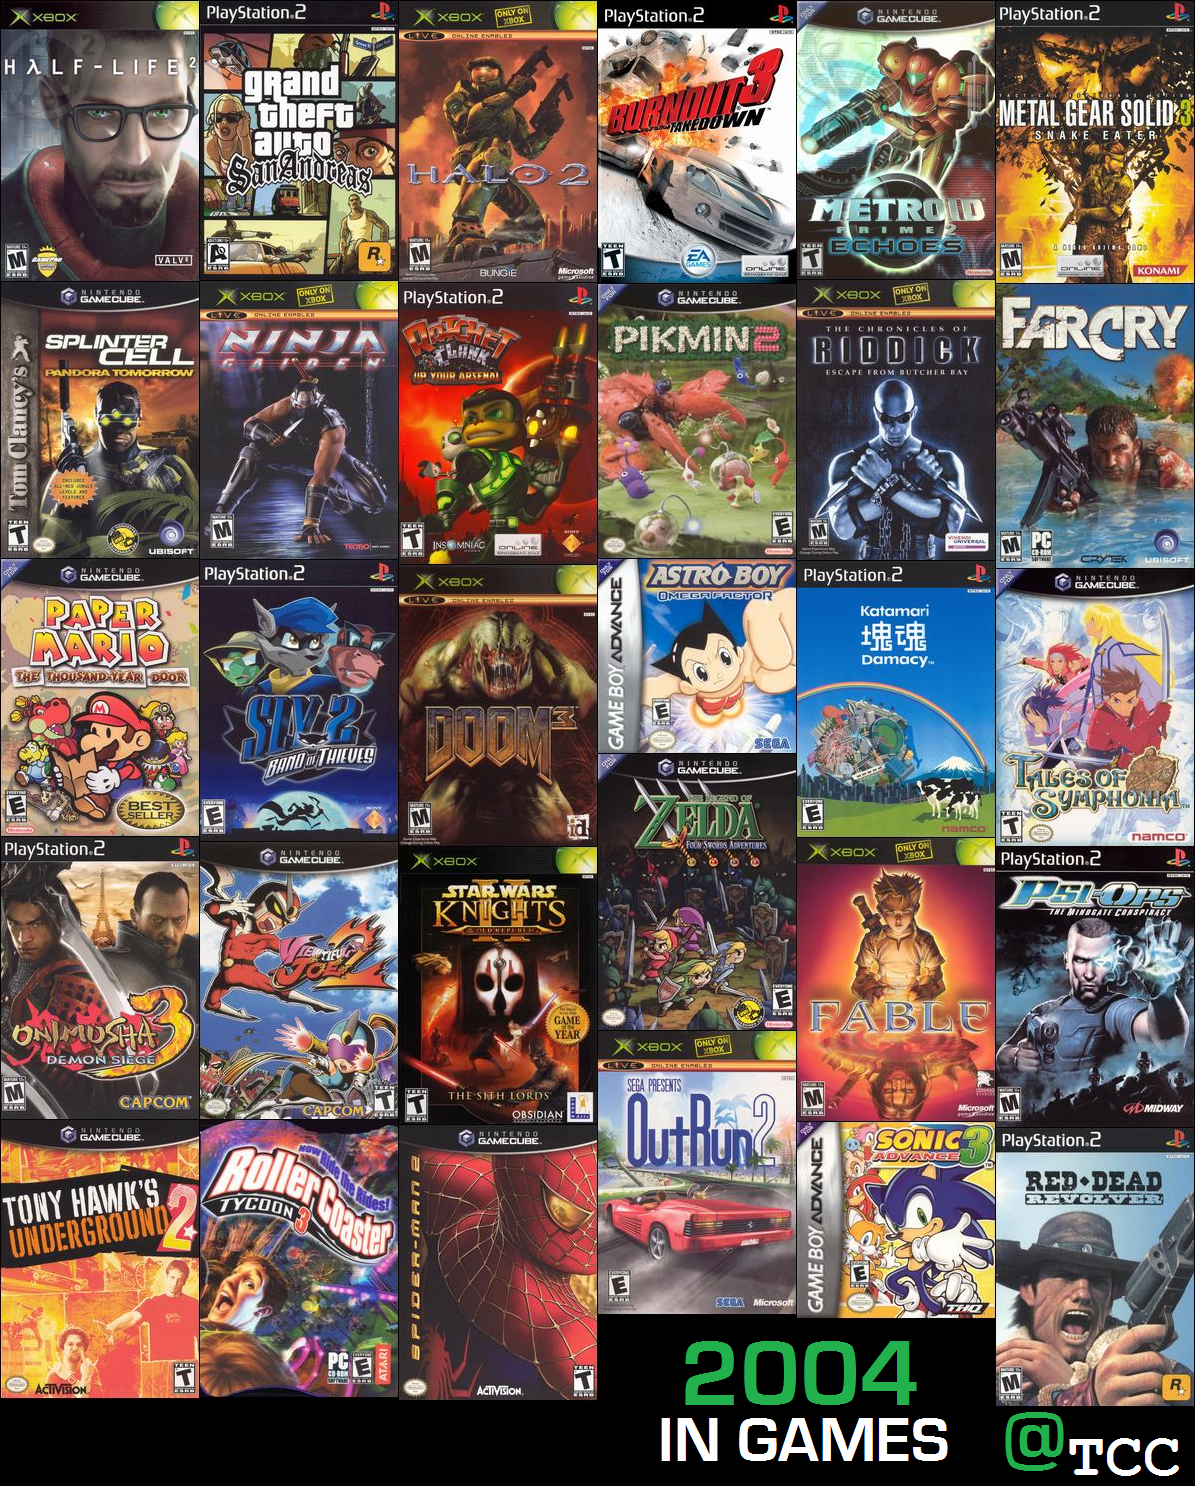 POLL: Best Game Of 2004.